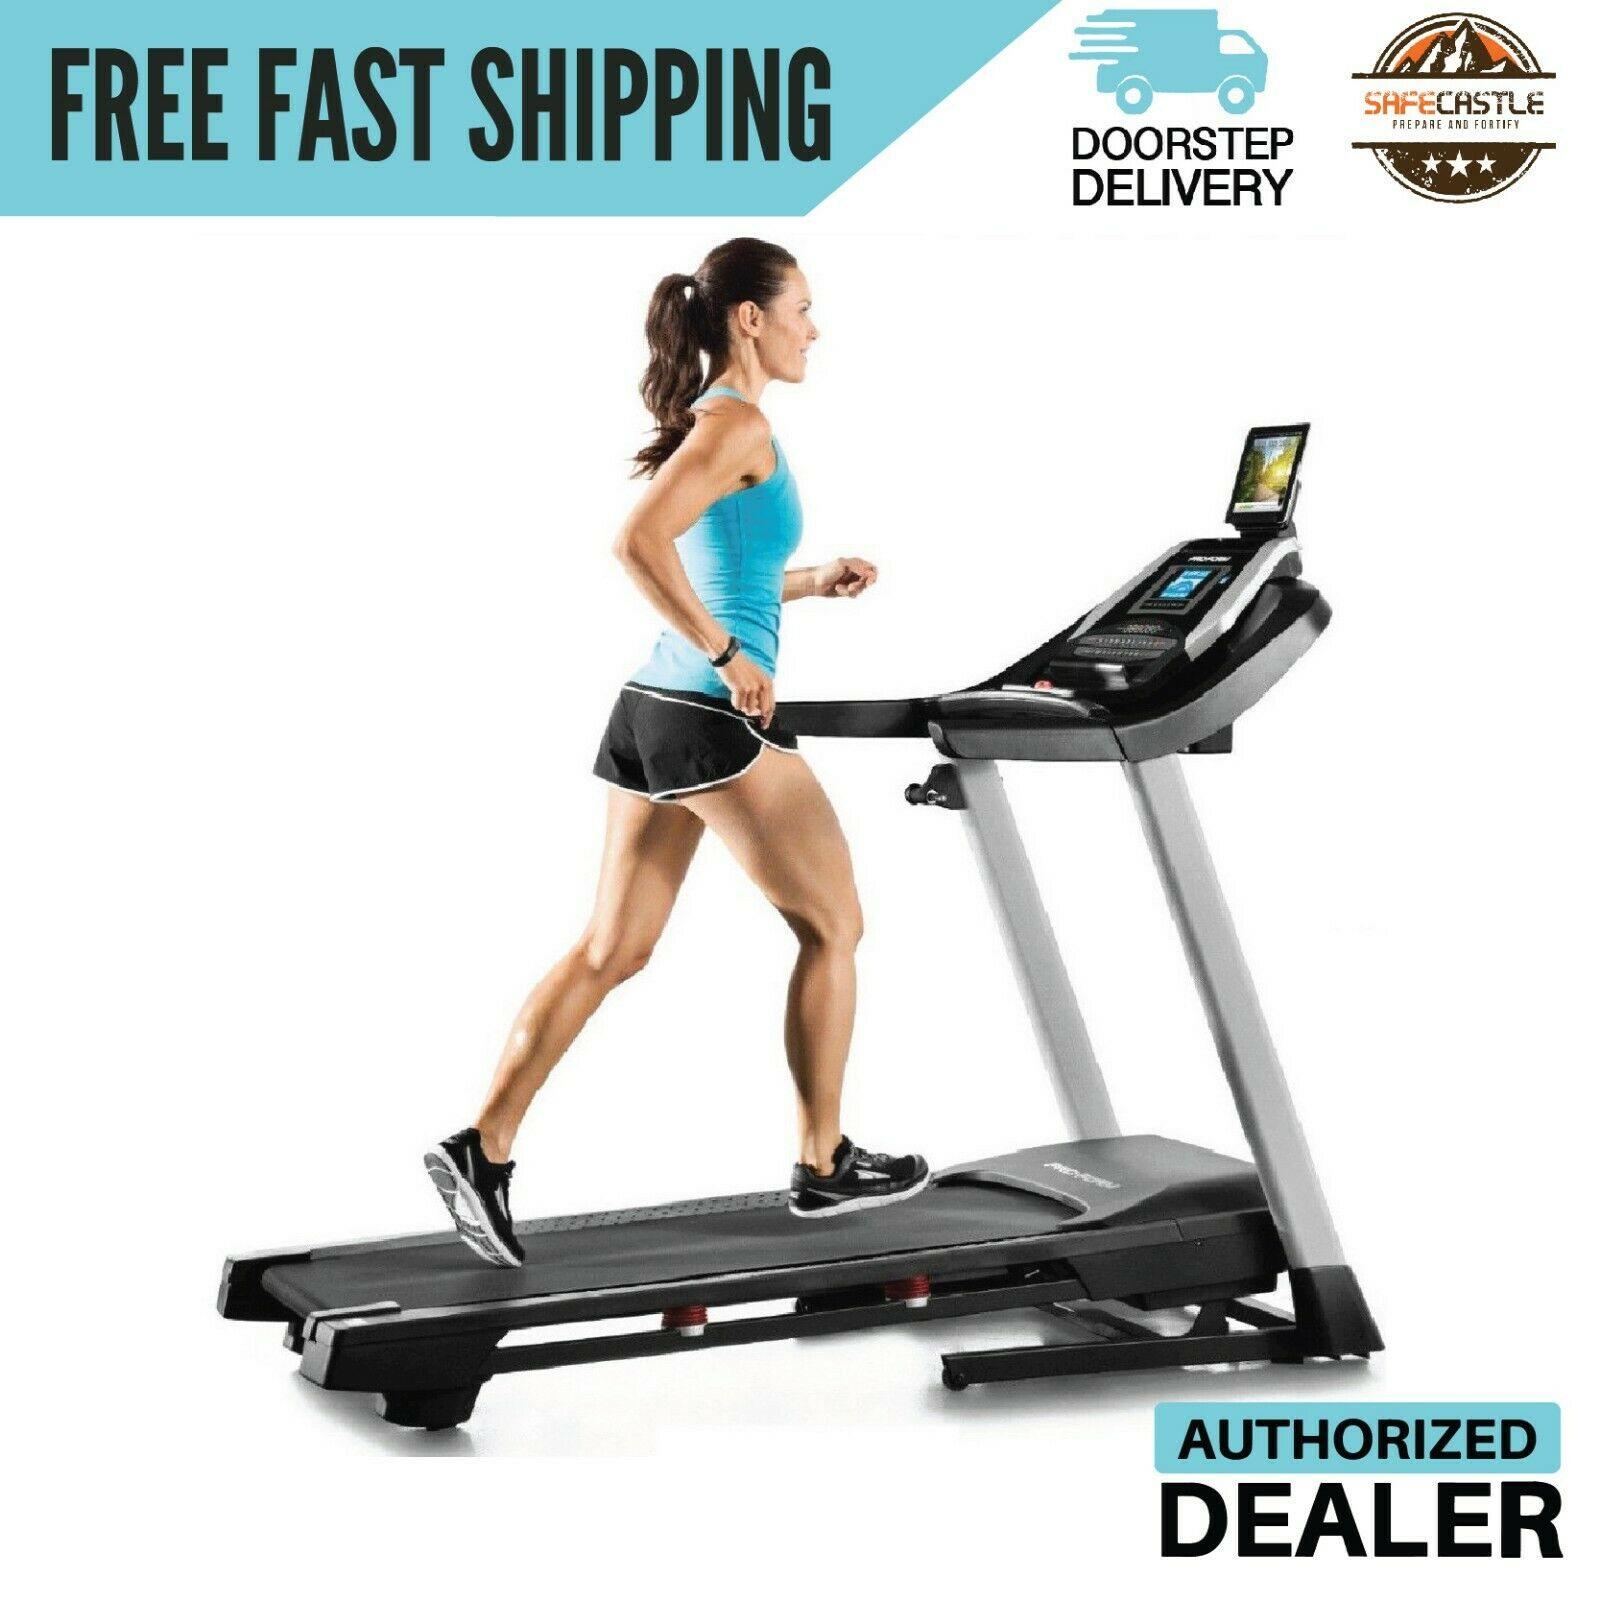 New ProForm 505 CST Treadmill,Workout Machine,In-house Deliv